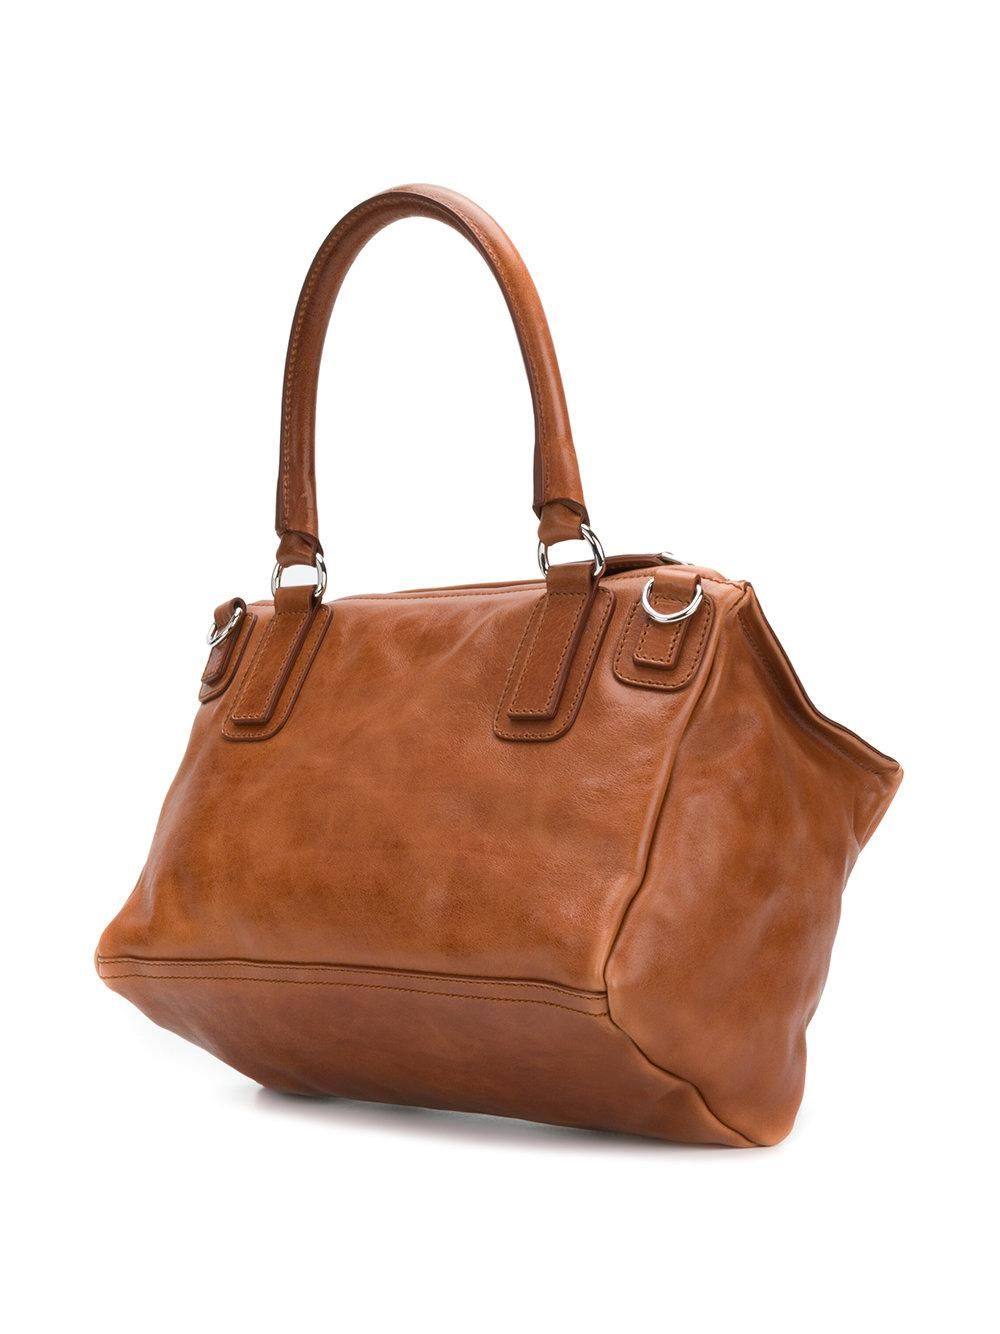 Givenchy Leather Rectangular Shape Tote Bag in Brown